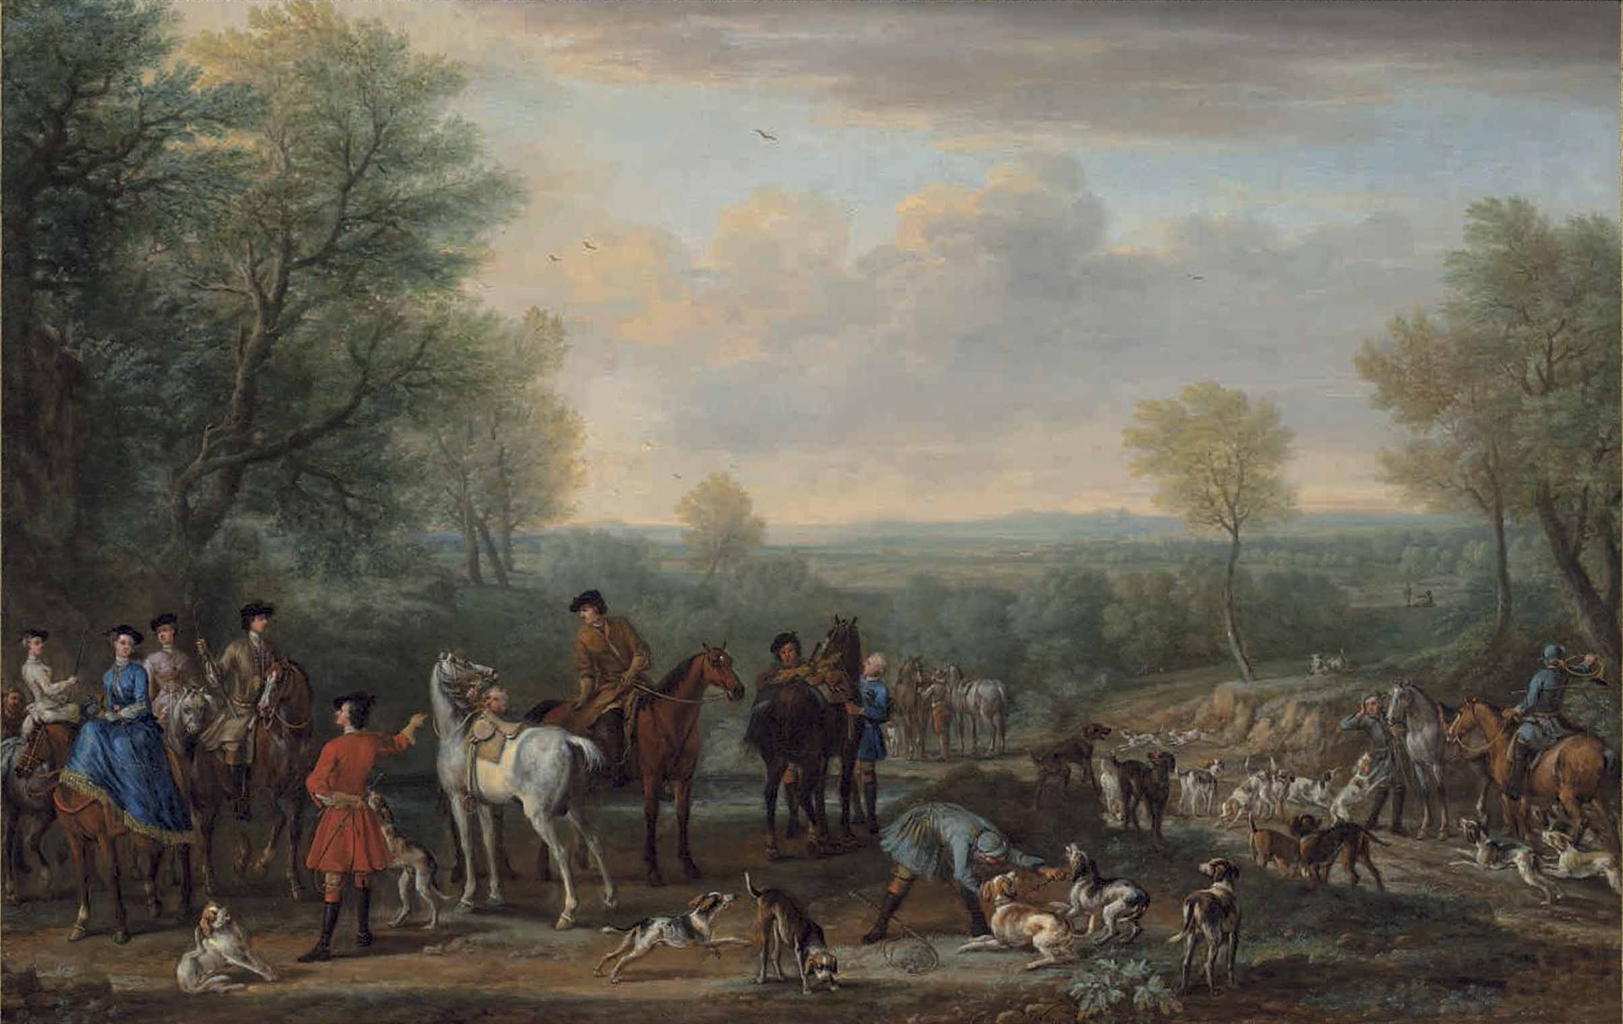 The Meet: A hunting party, with figures, horses and hounds, in an extensive wooded landscape